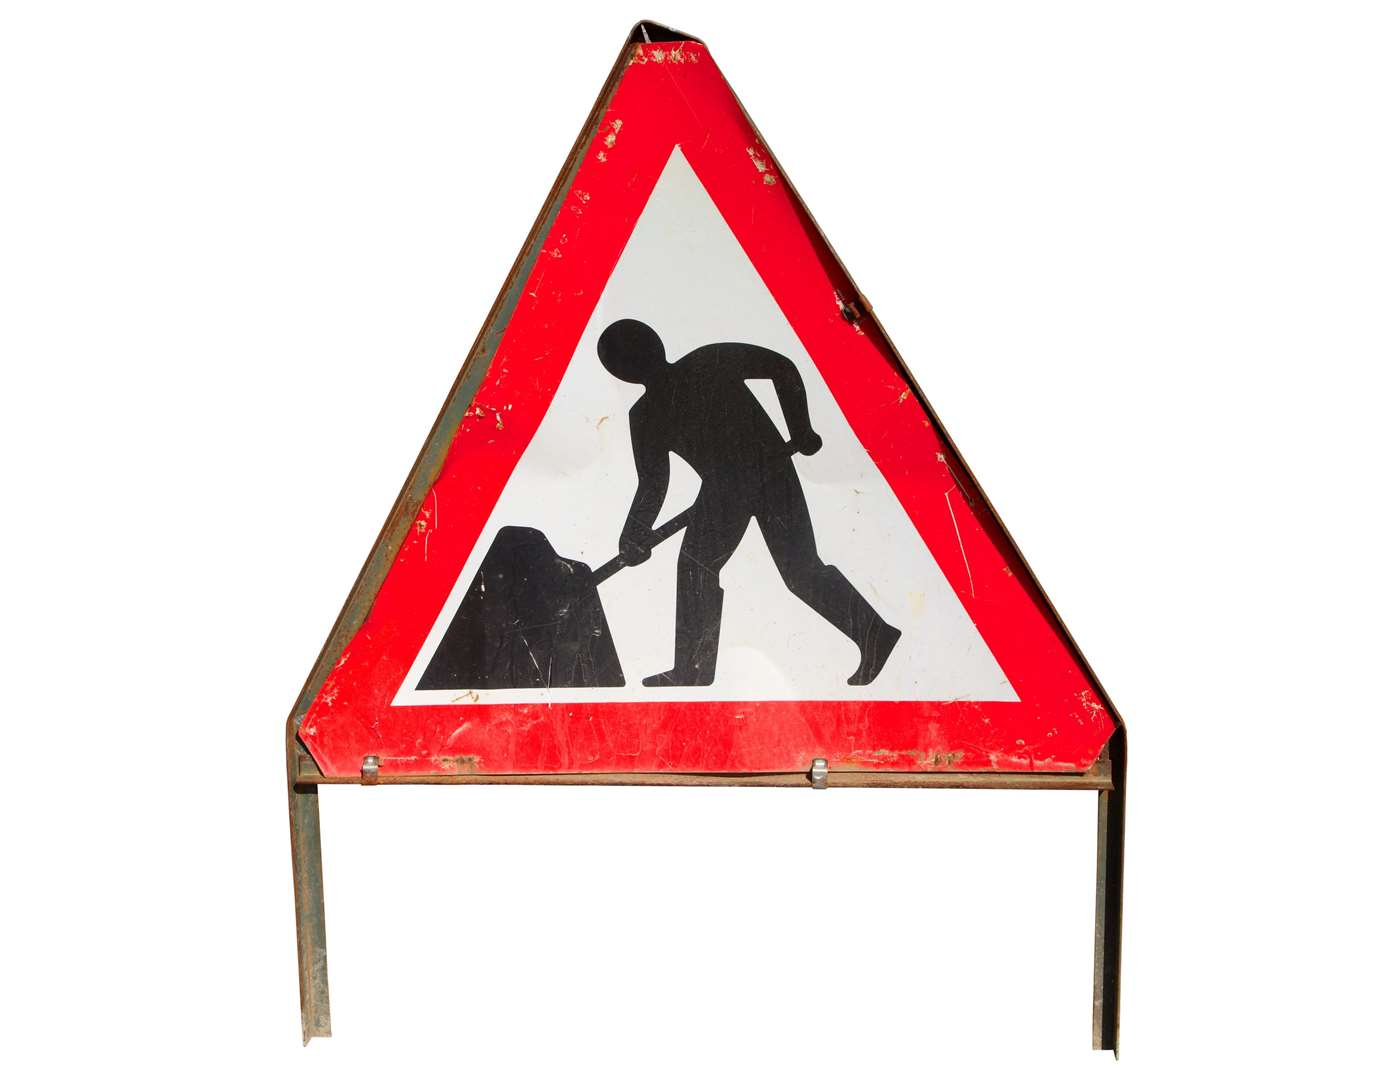 Road works extended in Badenoch